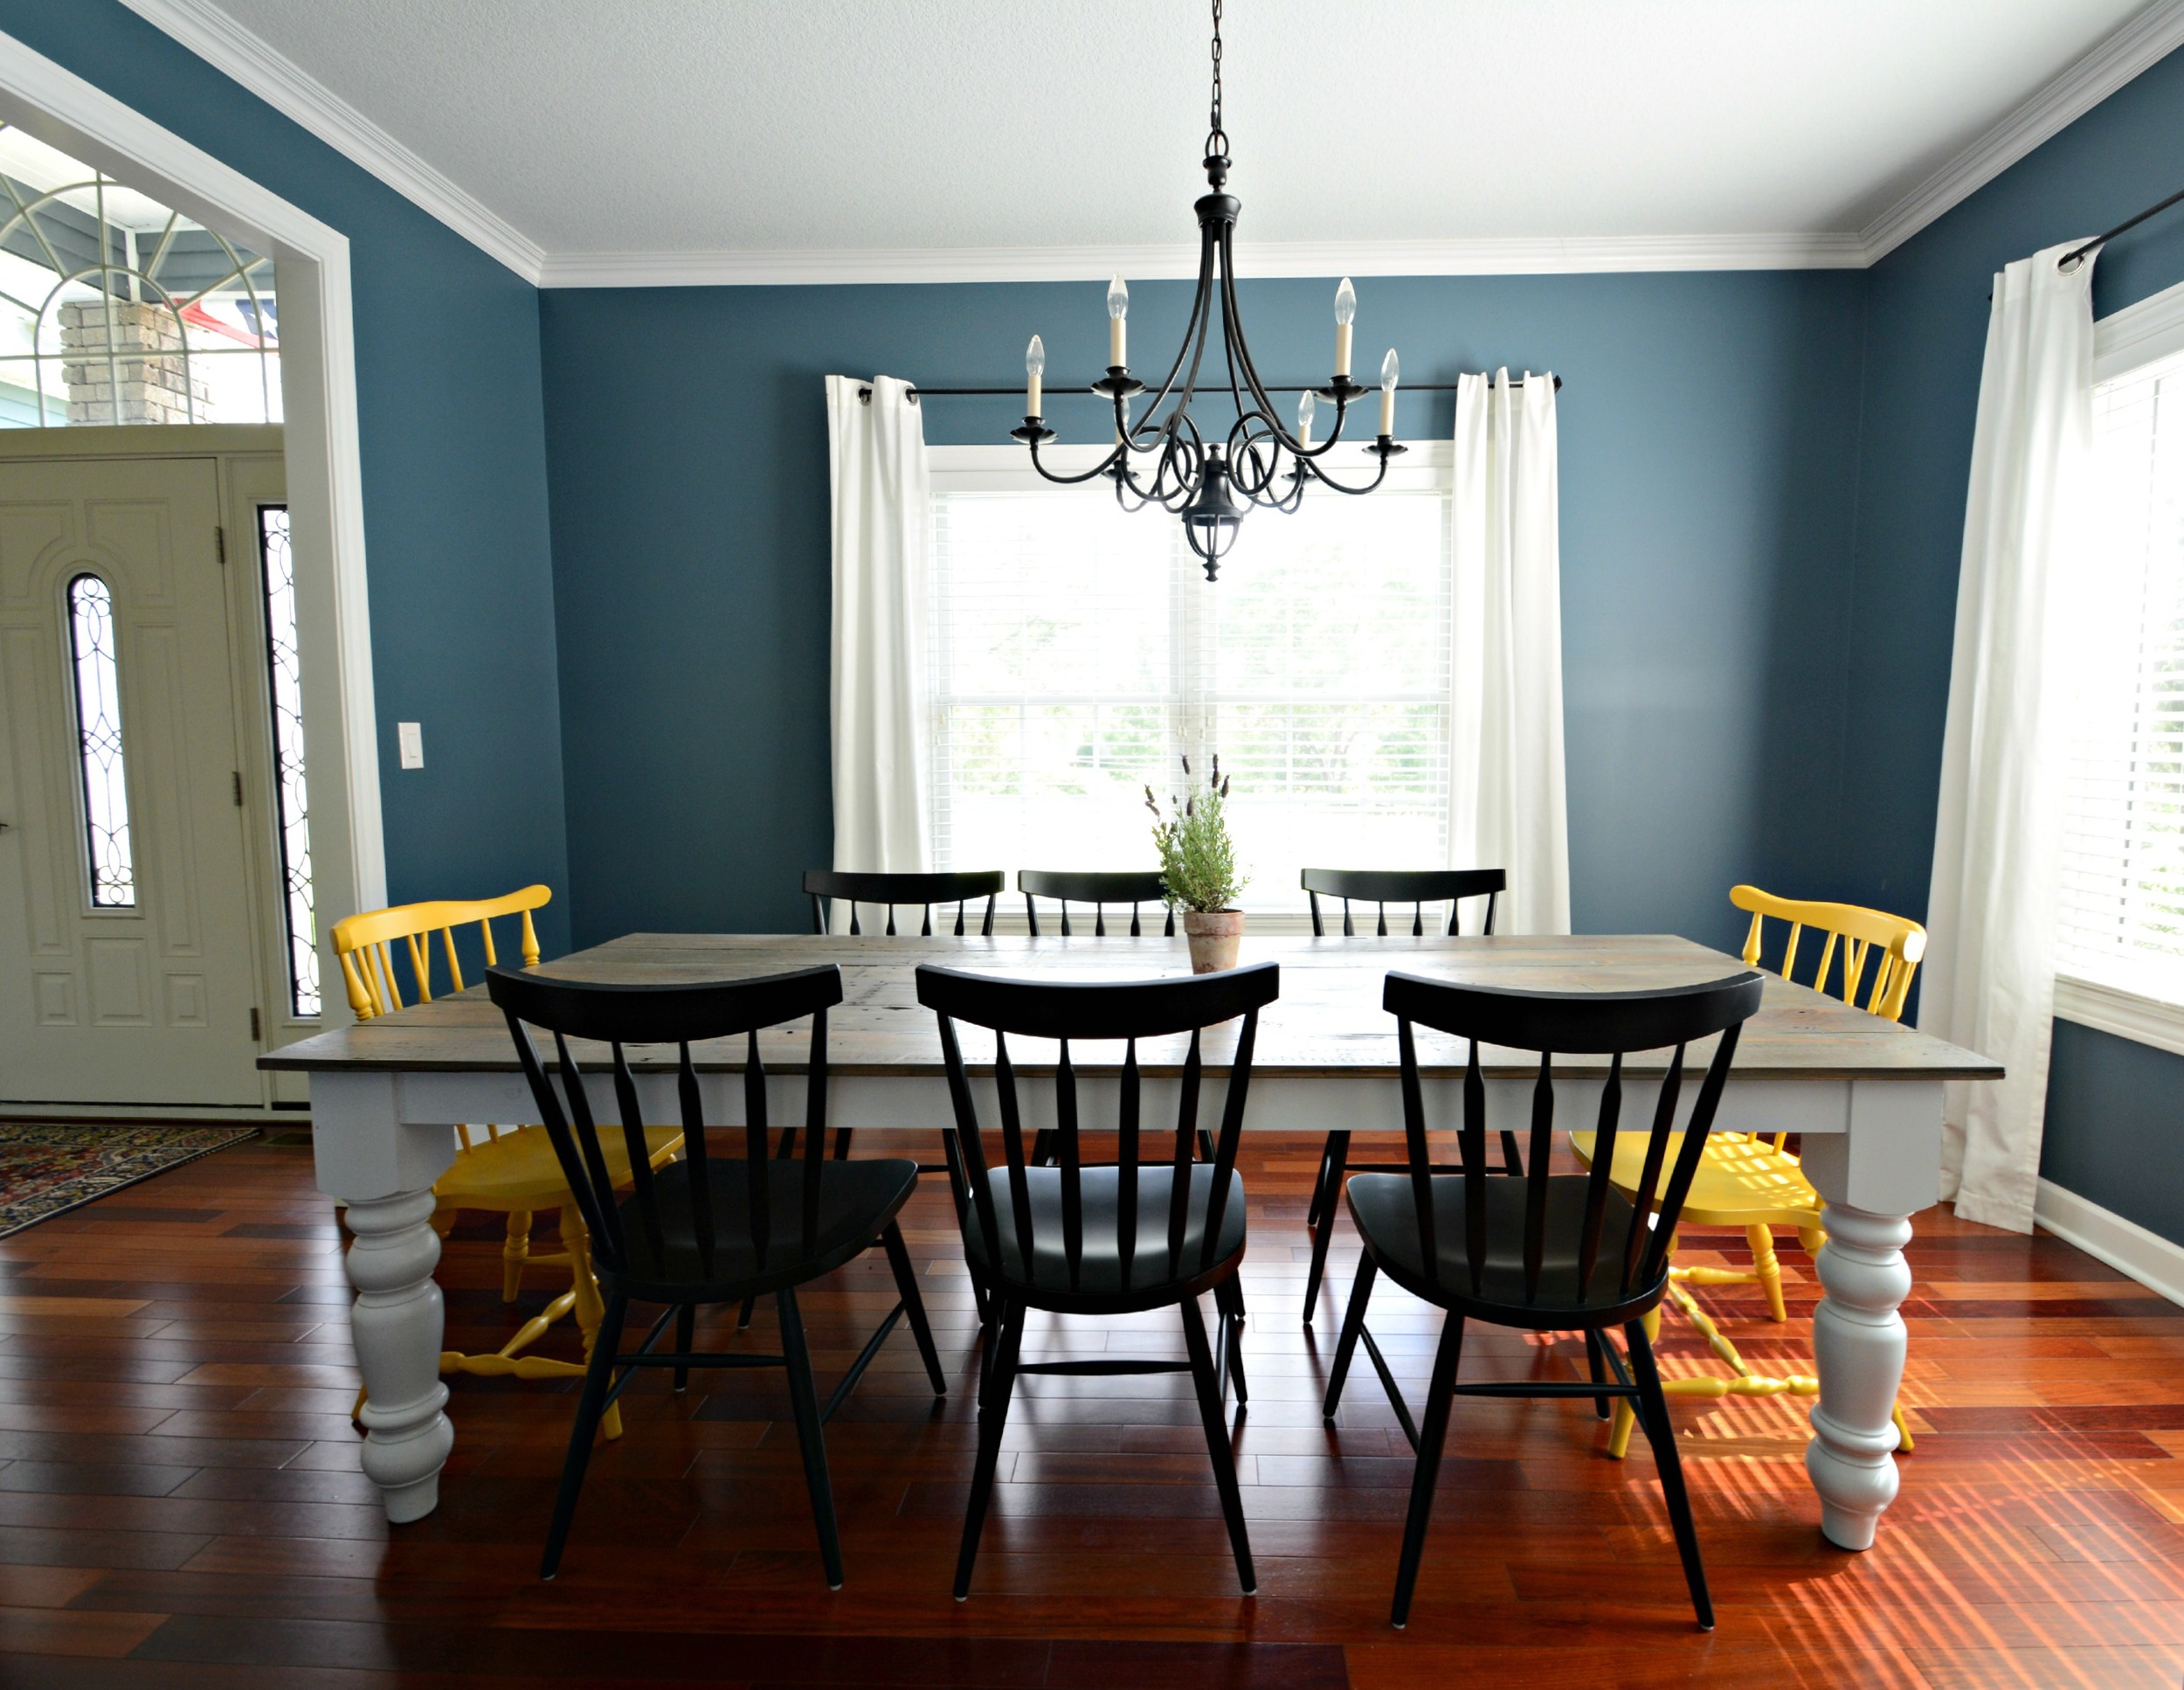 breakfast table and chairs for two baby high chair india full tour — decor the dog